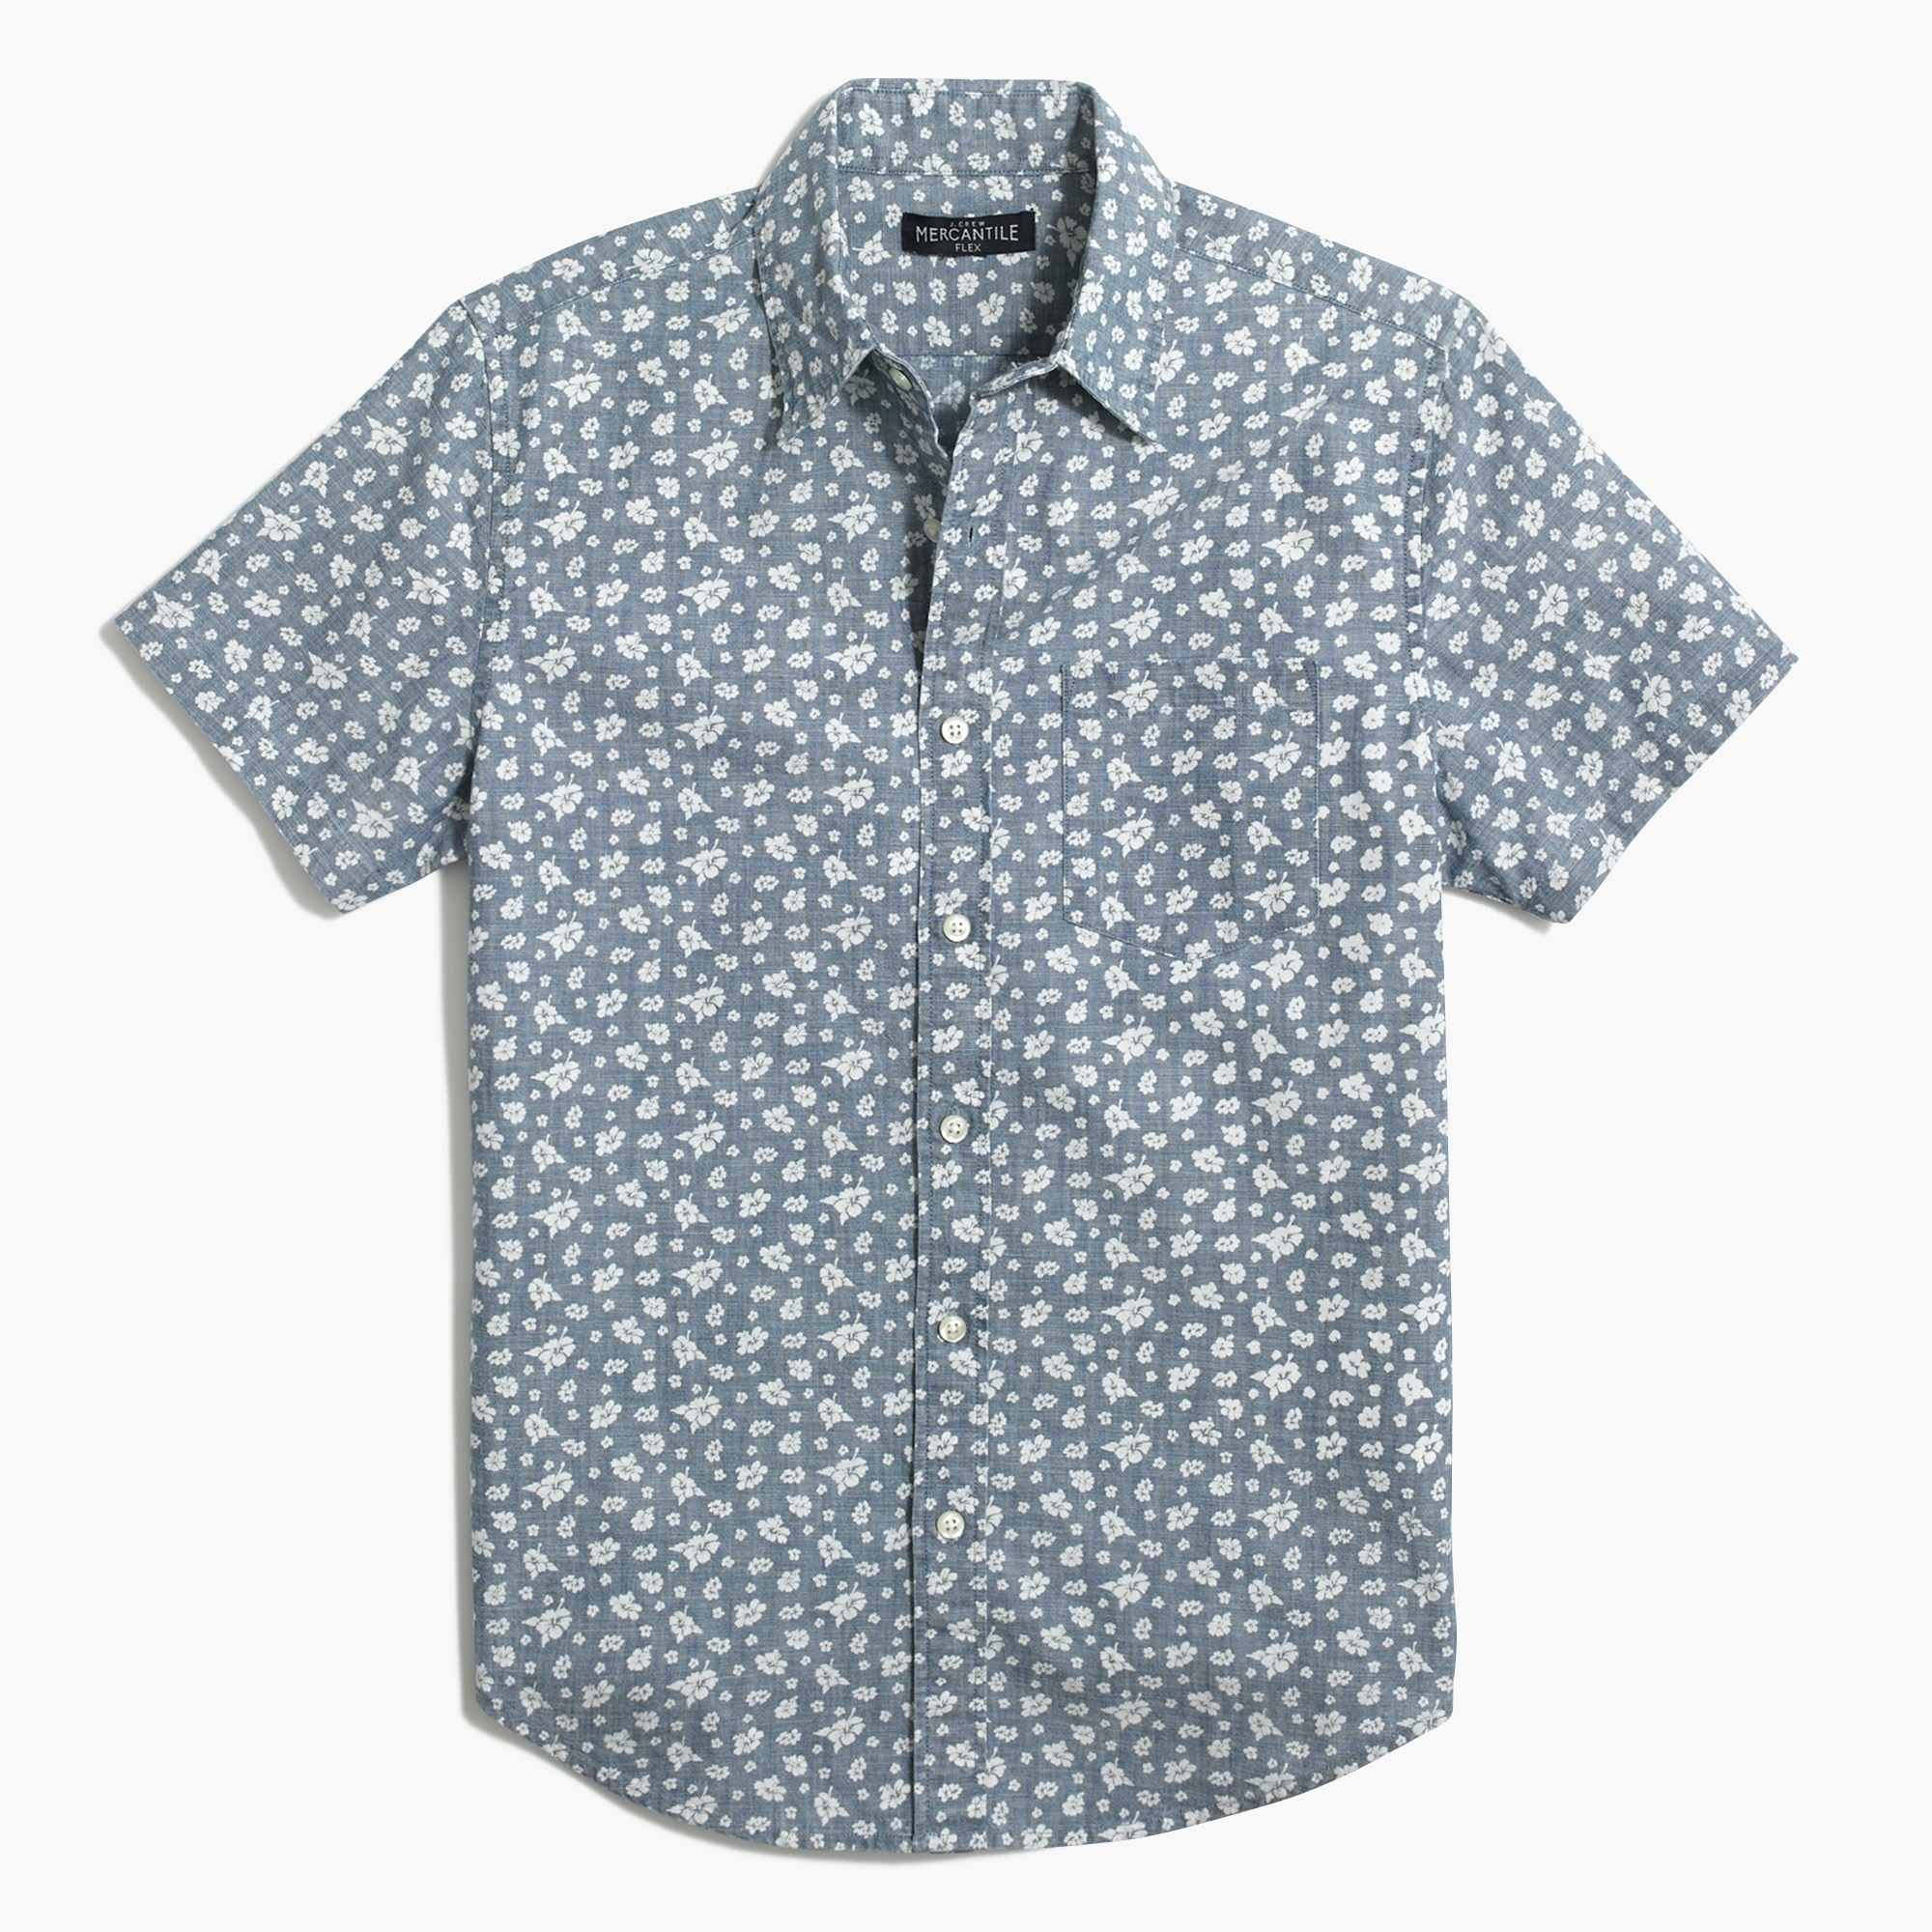 Image 3 for Slim short-sleeve printed chambray shirt